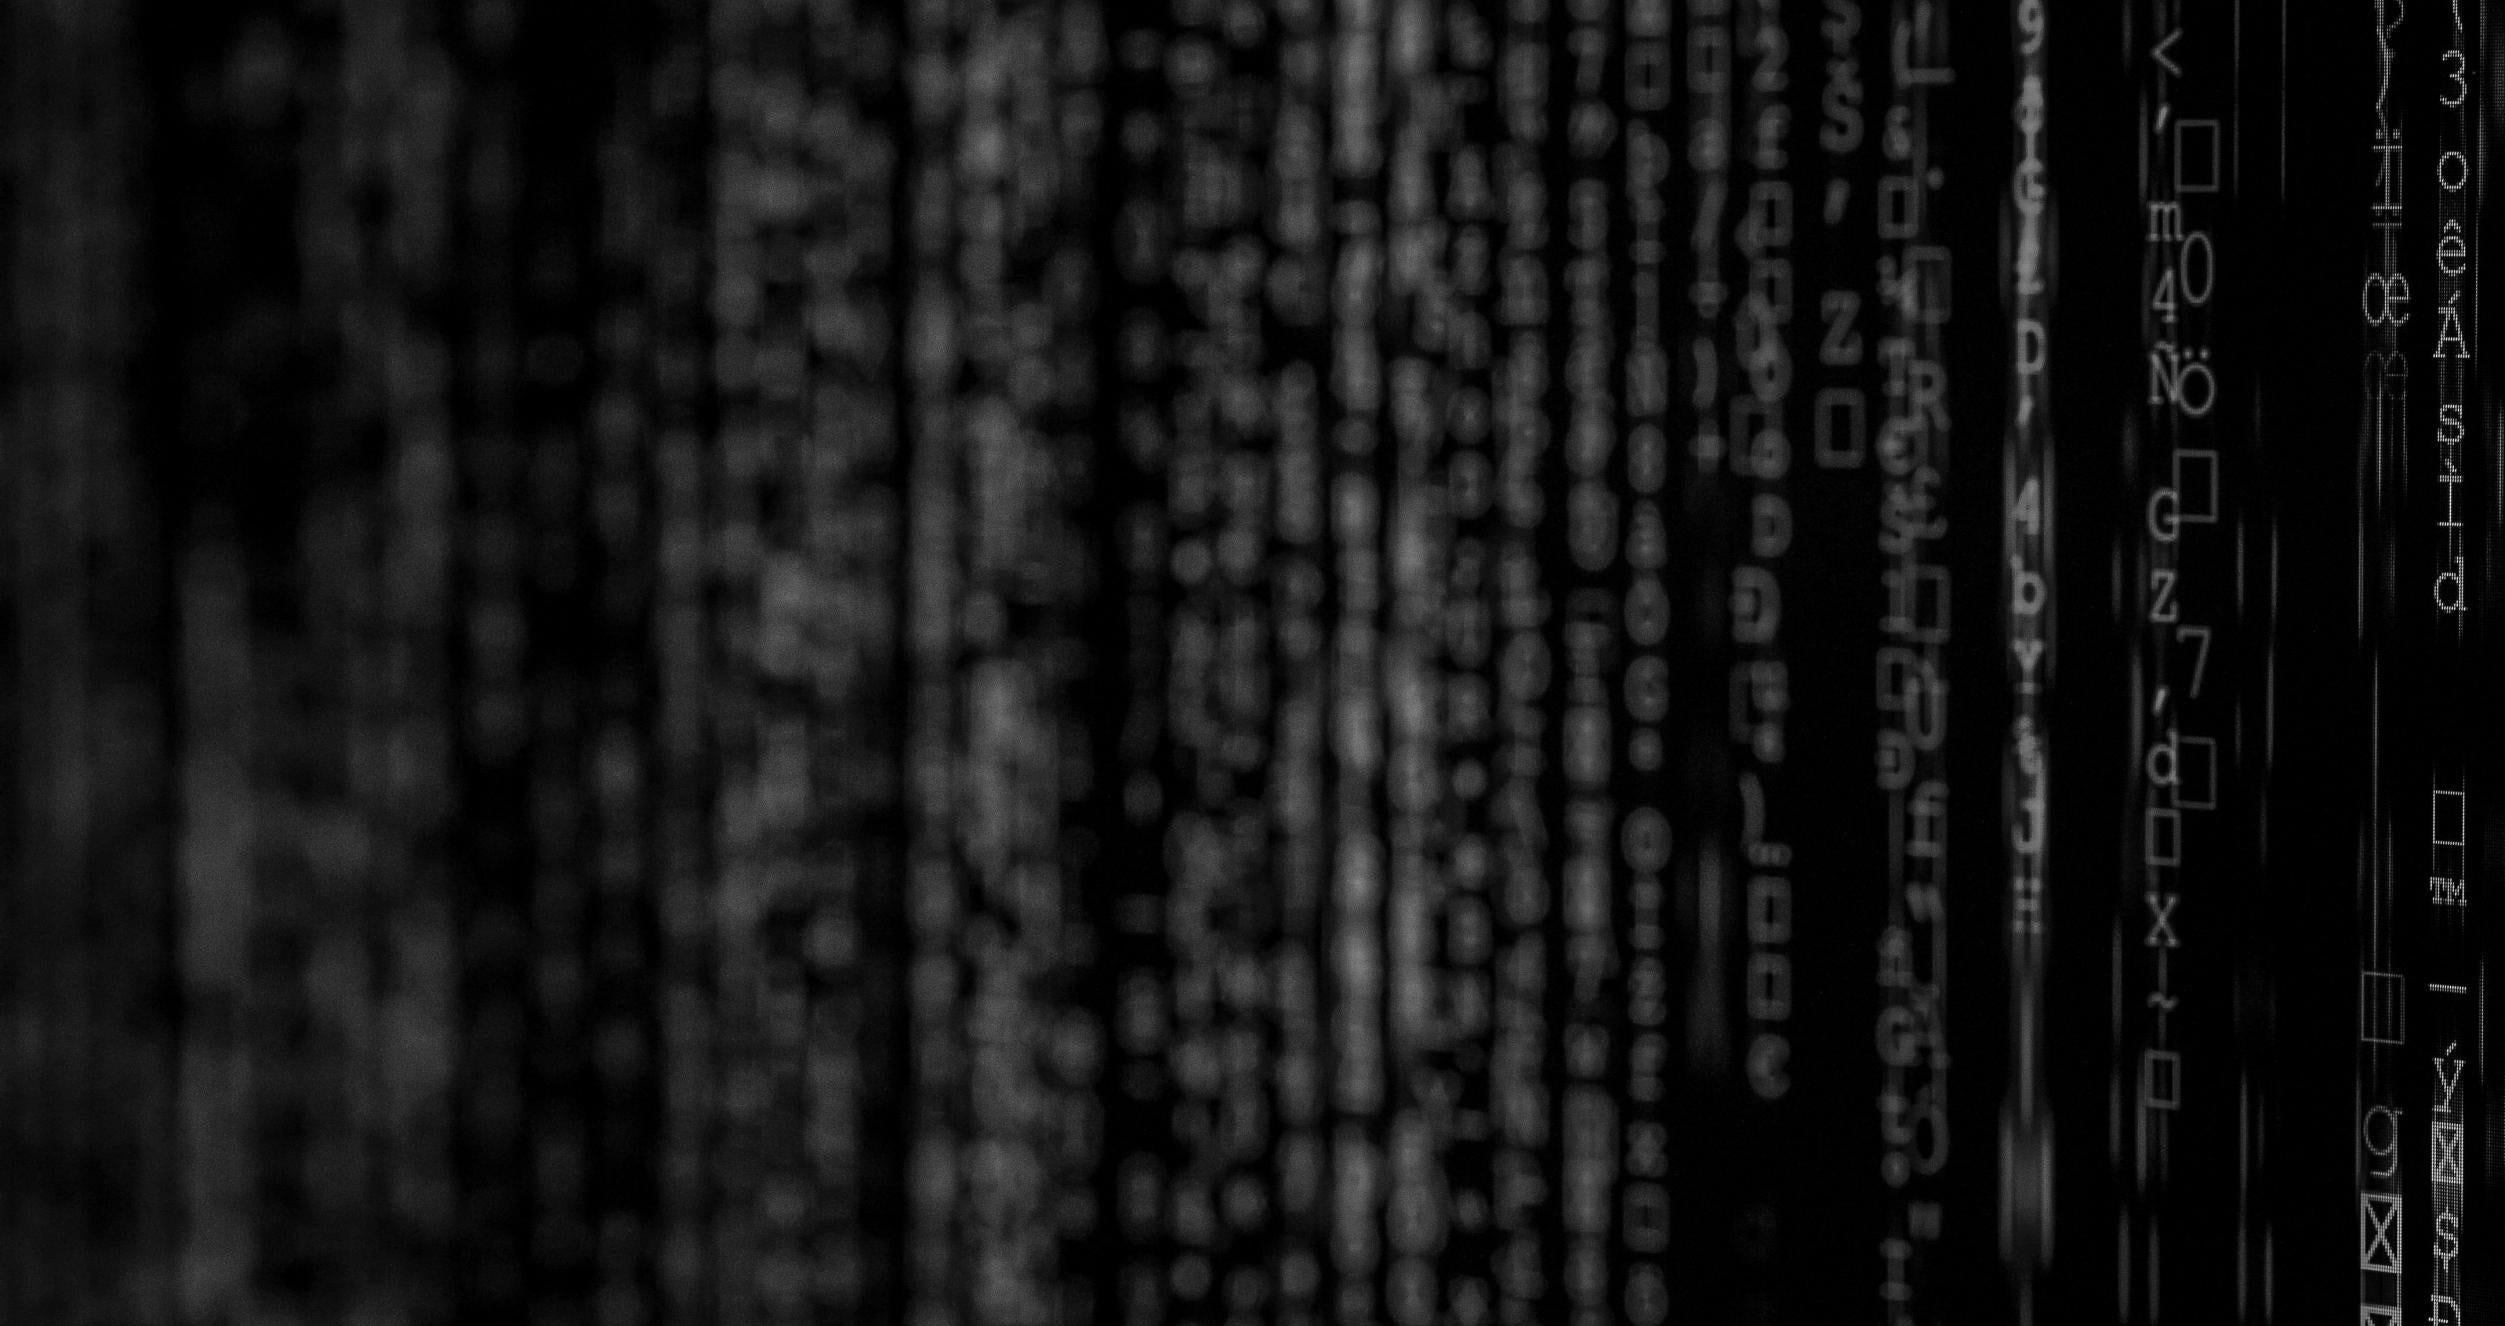 Abstract background showing a black screen with white code